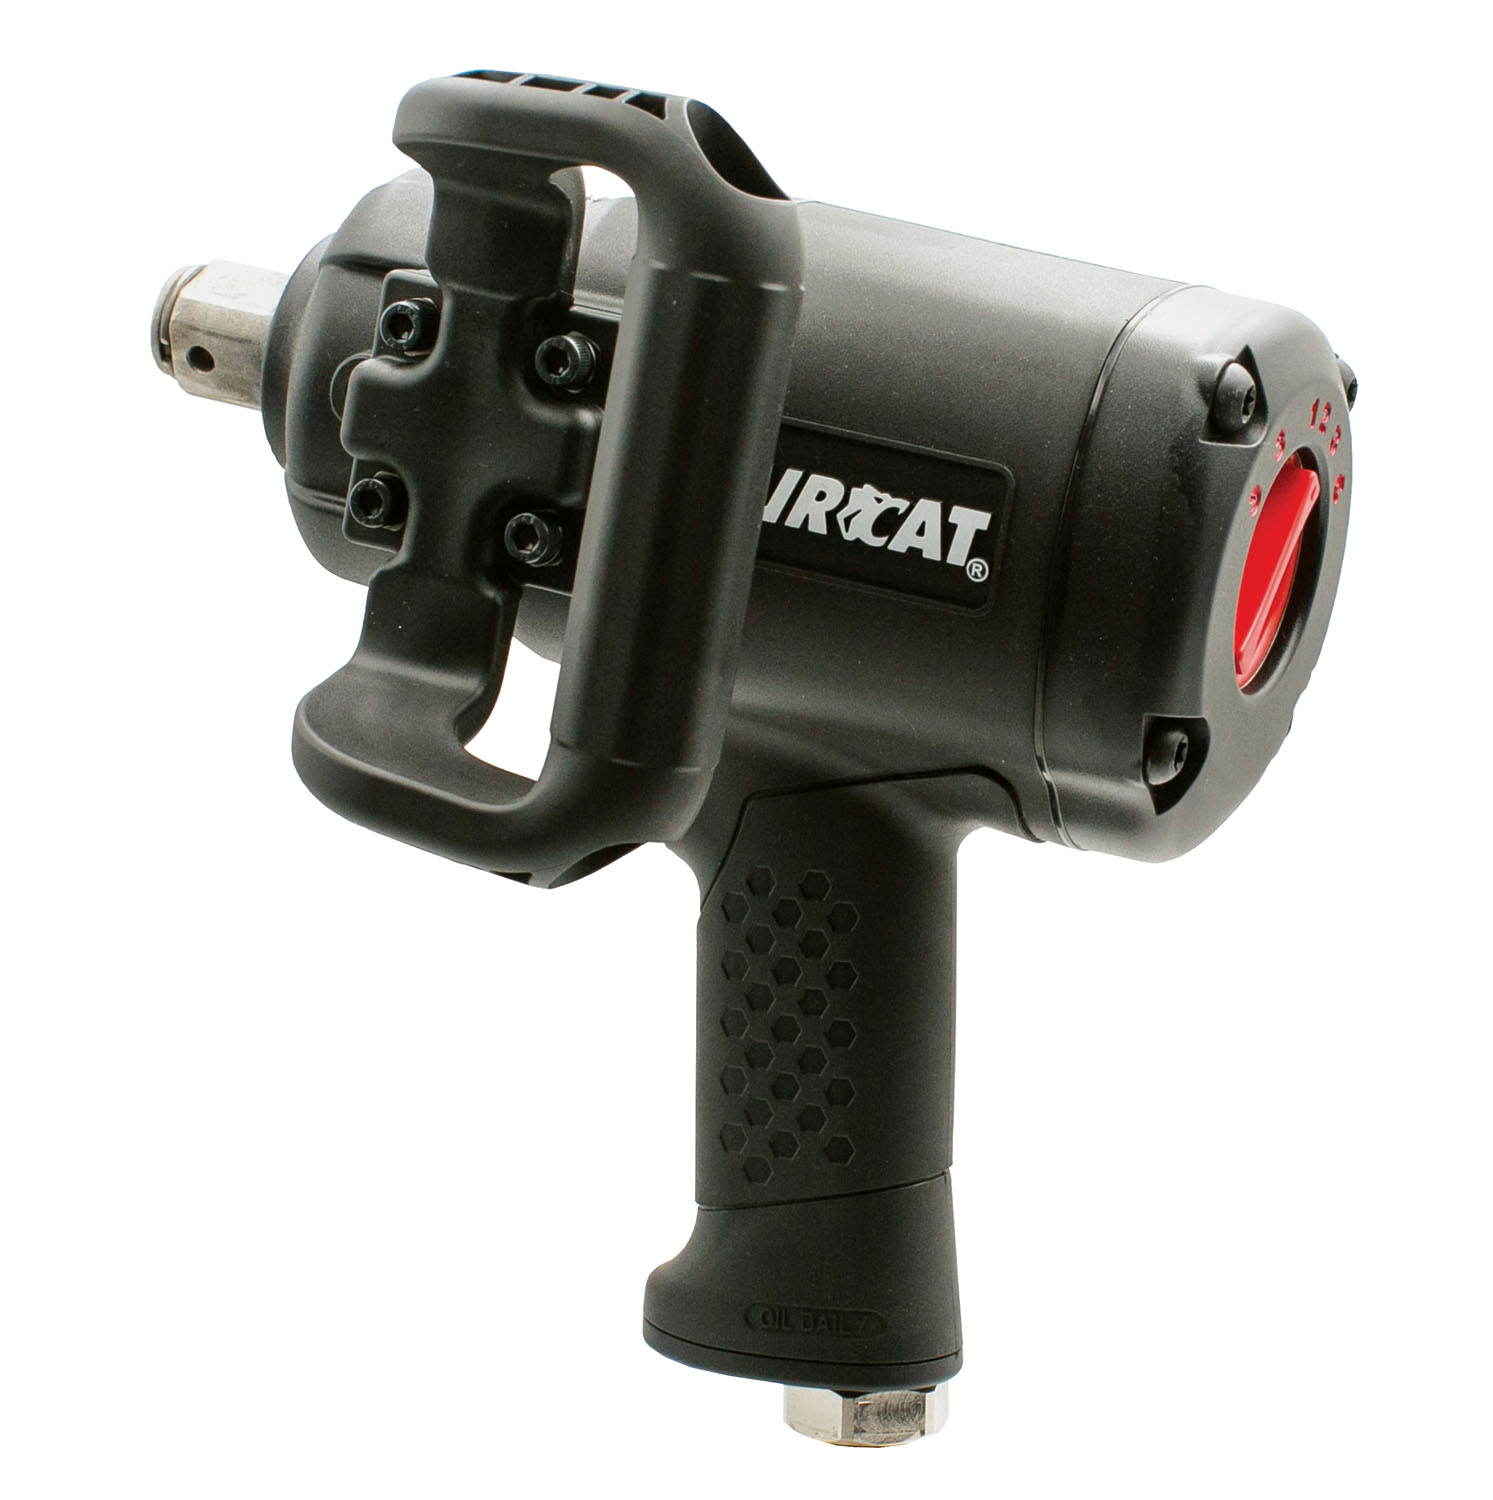 "AIRCAT 1"" Low Weight Impact Wrench"